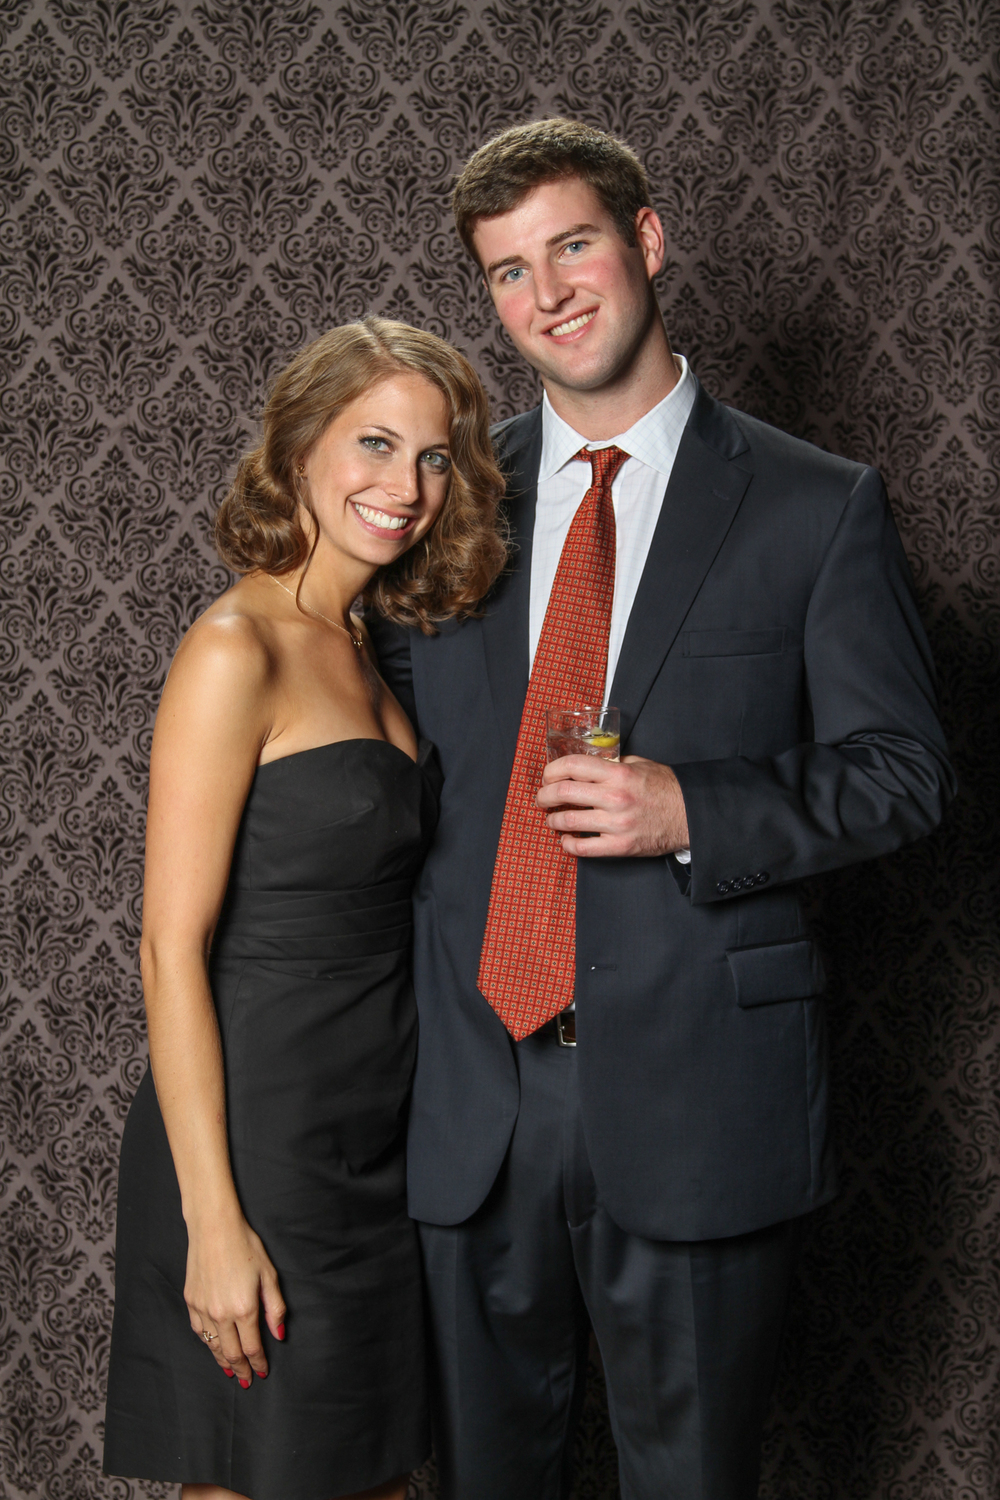 130907_4EyesWeddingBooth-081.jpg